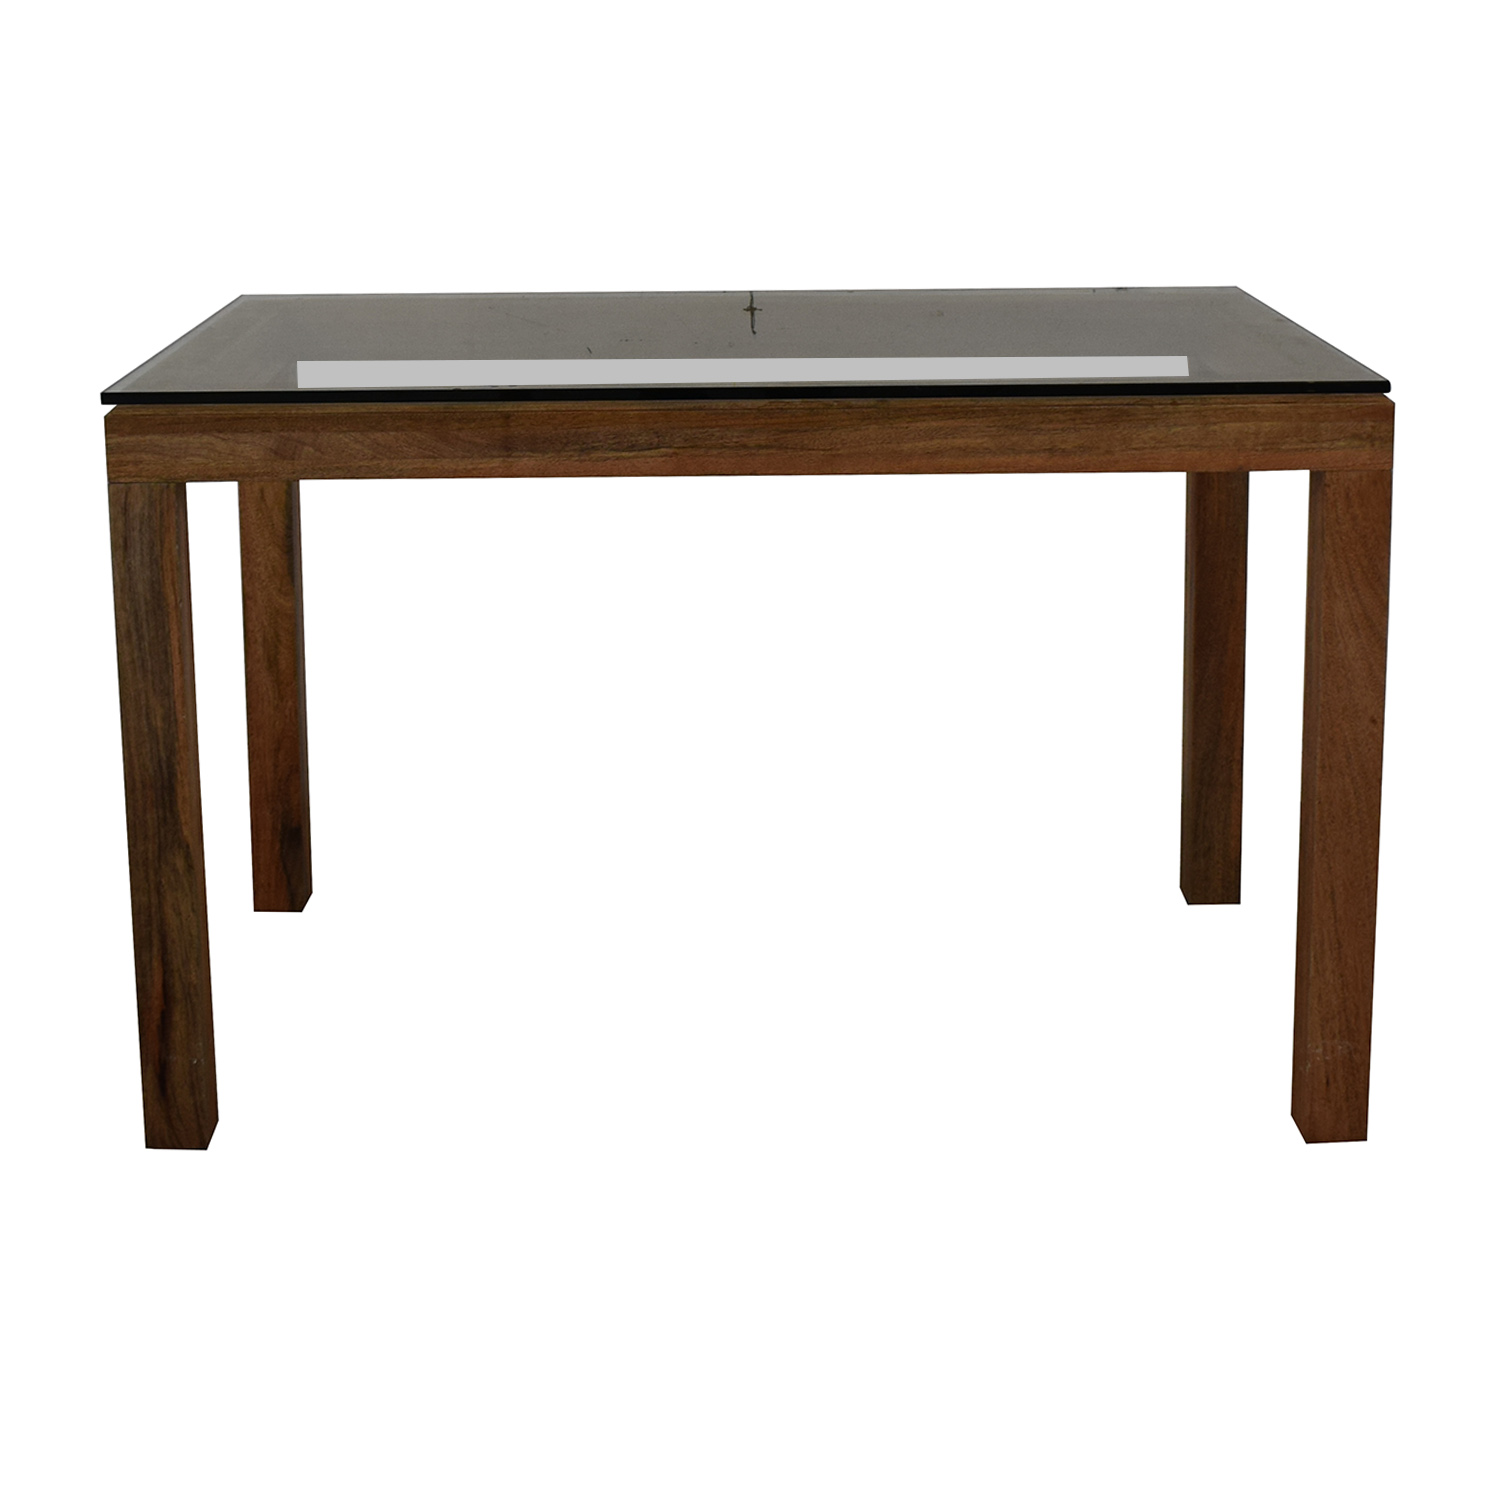 West Elm West Elm Glass Top Table on sale